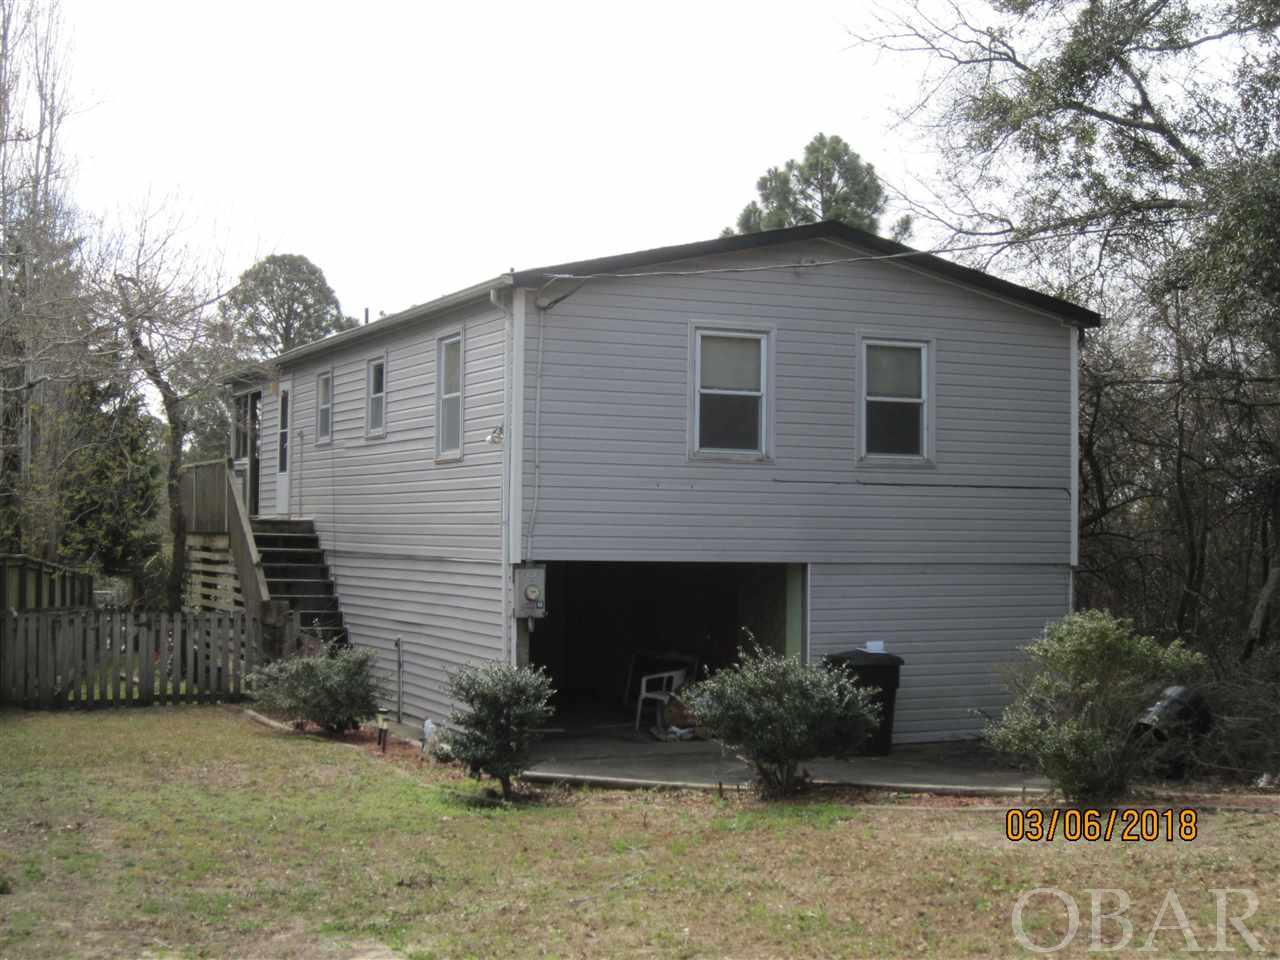 905 Colington Drive,Kill Devil Hills,NC 27948,3 Bedrooms Bedrooms,1 BathroomBathrooms,Residential,Colington Drive,99593